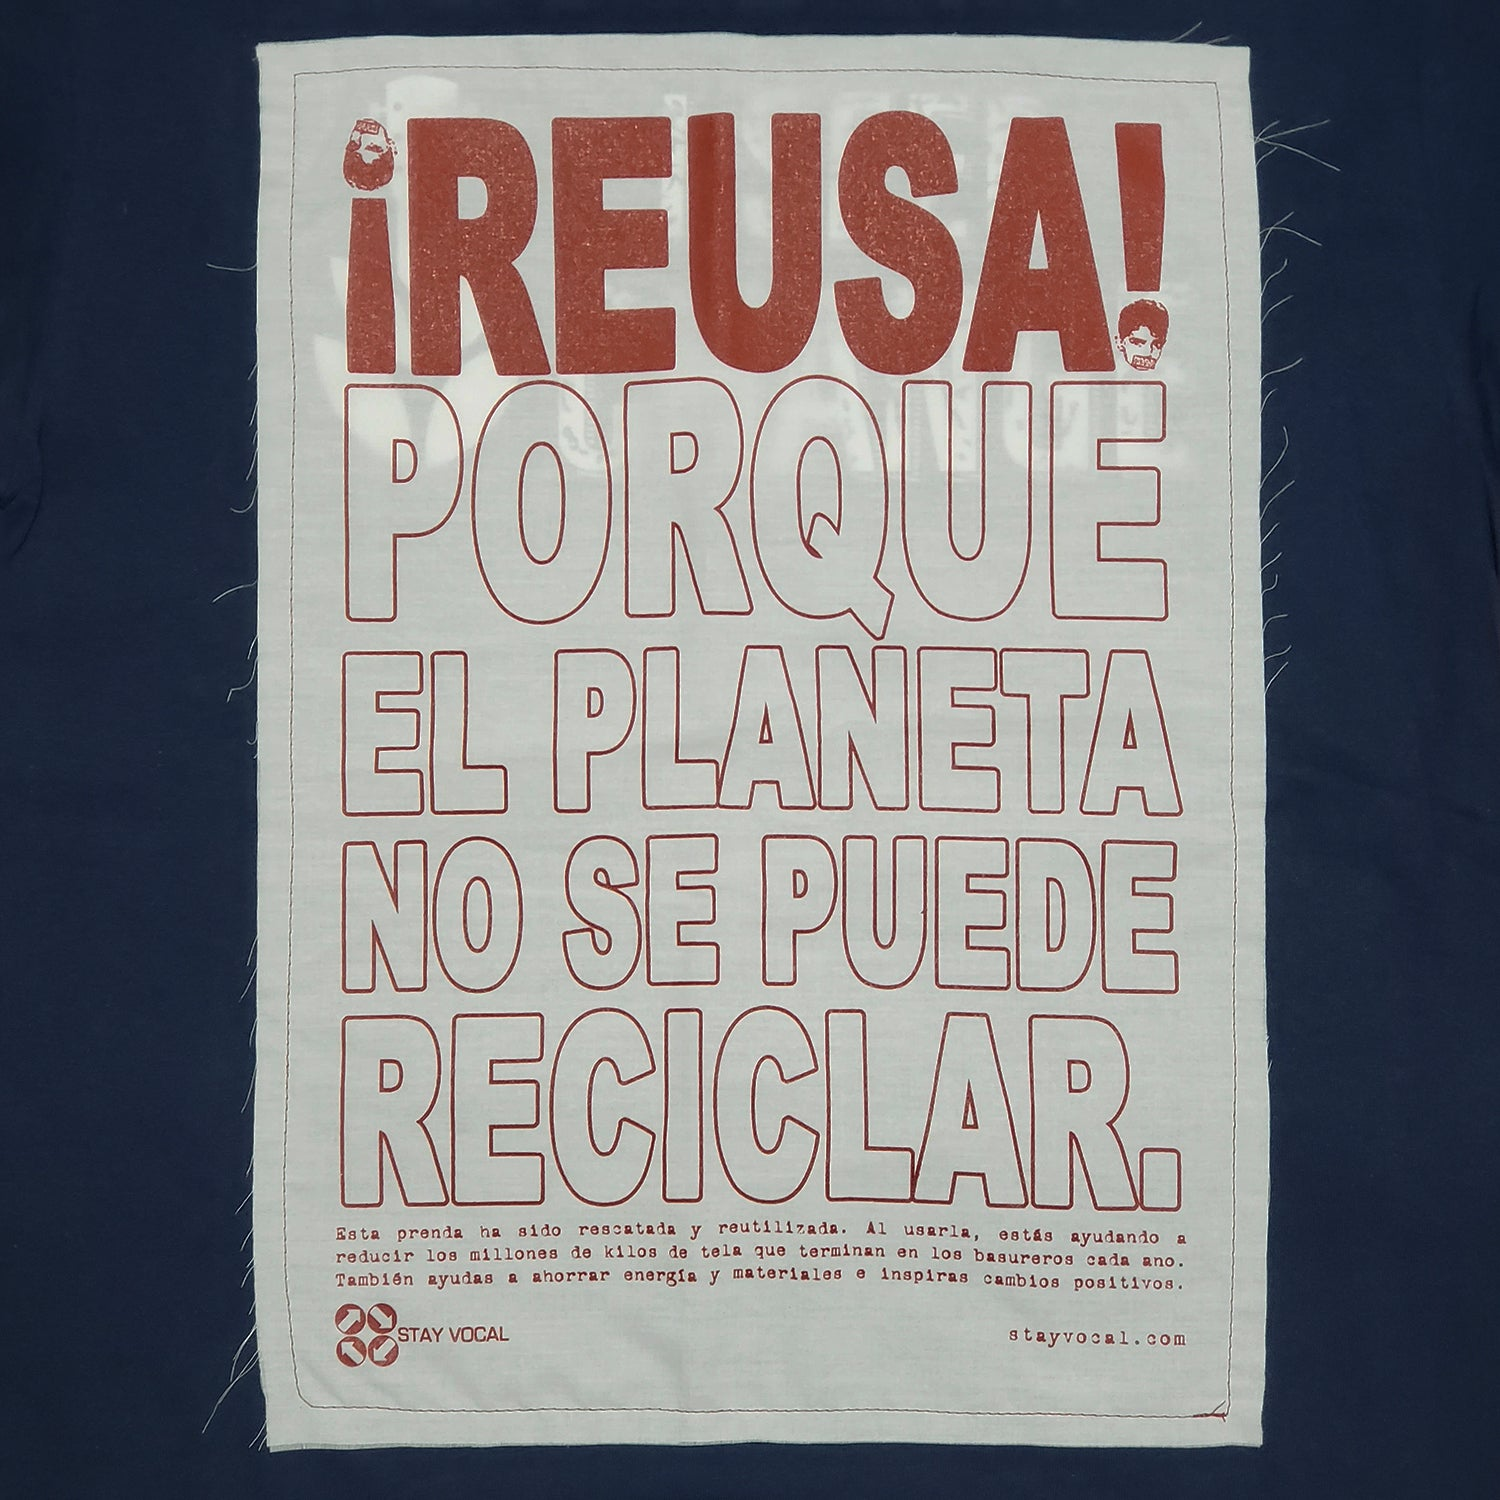 REUSE! Because... Spanish Big Patch T-Shirt : ¡REUSA! Porque El Planeta No Se Puede Reciclar.